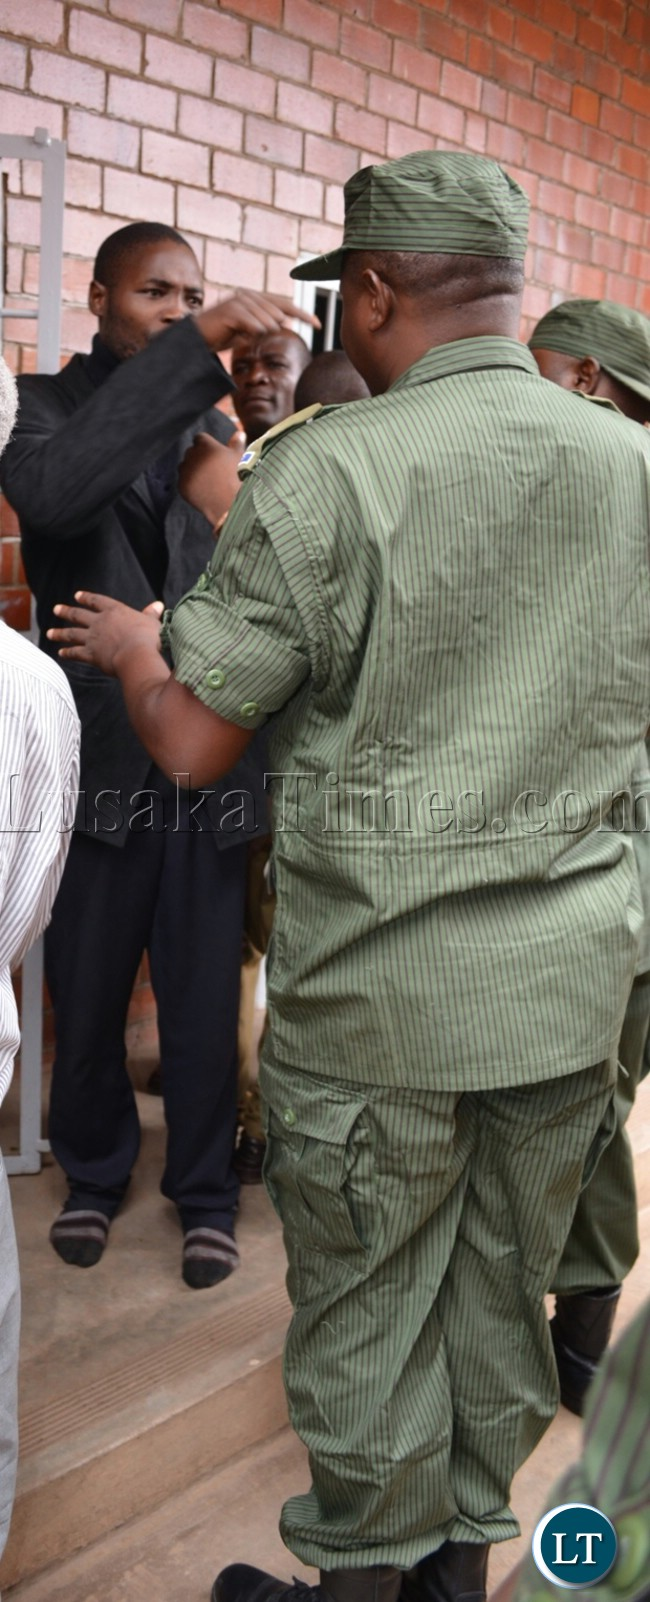 Police confront late Harrison Chanda's murder suspect Henry Lungu as he resisted to be taken in court cells in Livingstone